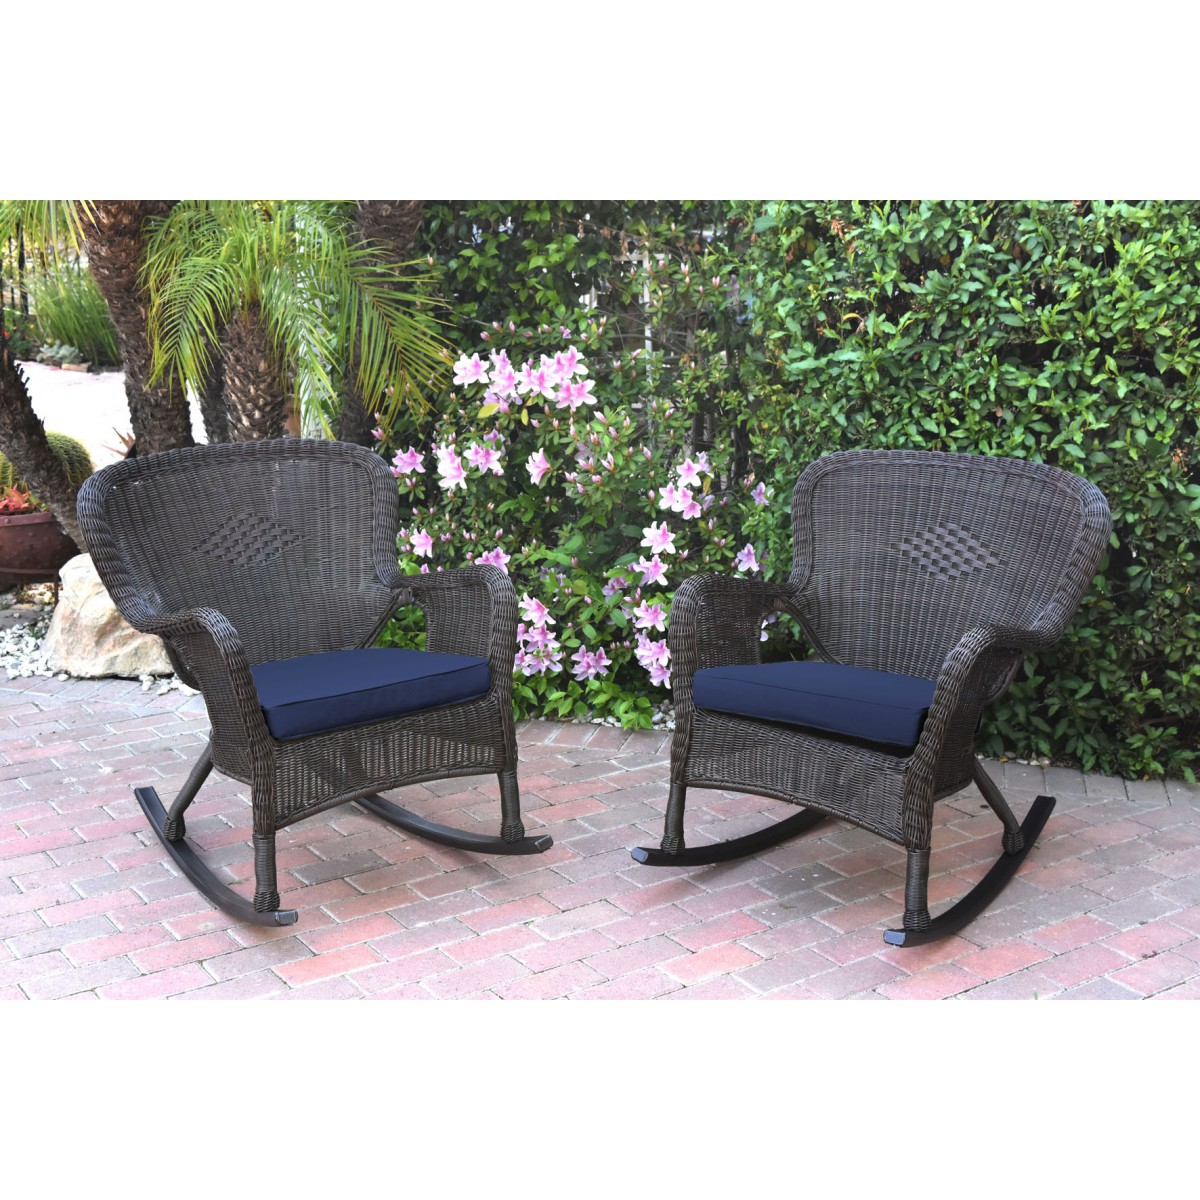 Marvelous Set Of 2 Windsor Espresso Resin Wicker Rocker Chair With Midnight Blue Cushions Cjindustries Chair Design For Home Cjindustriesco